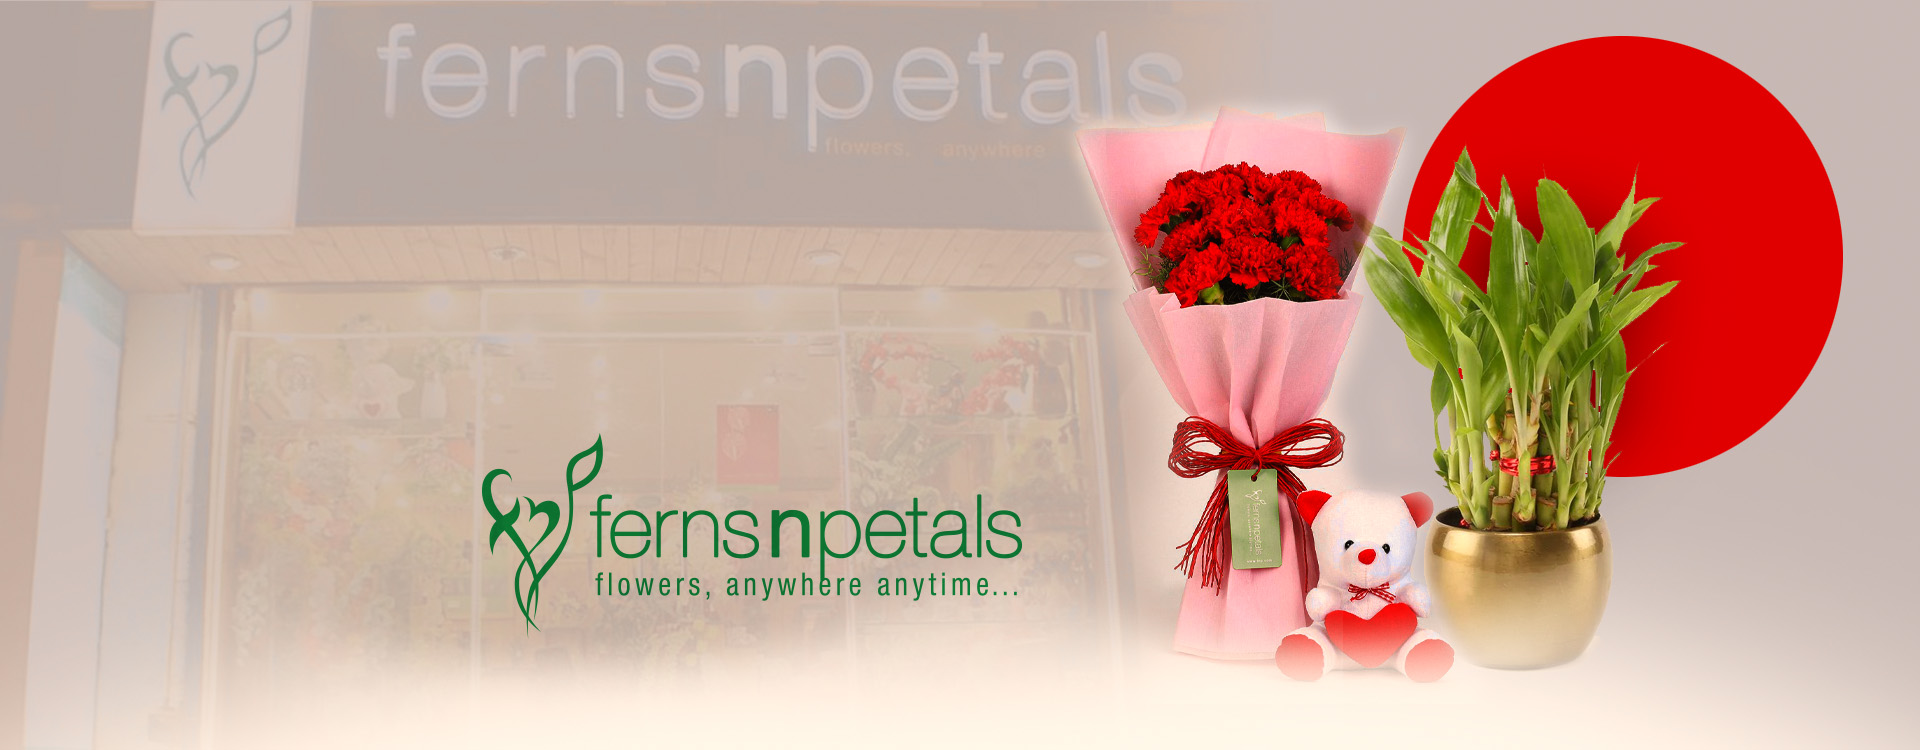 Ferns N Petals- India's Leading Flower Brand